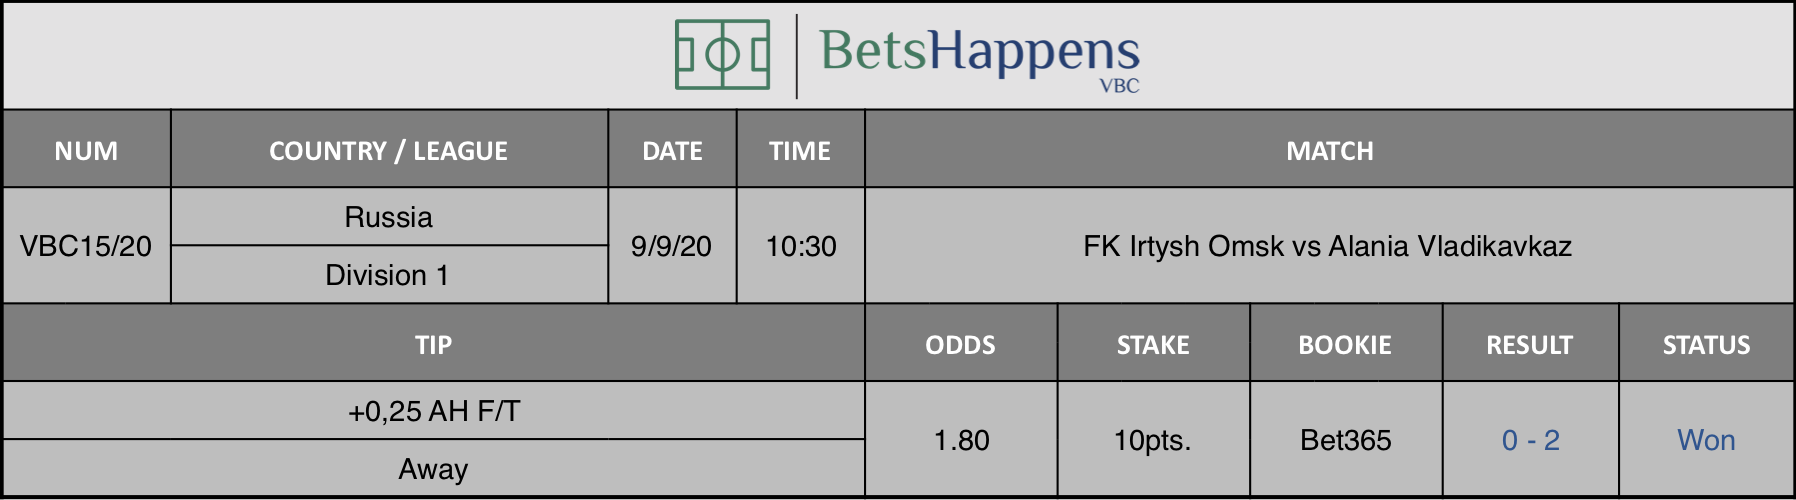 Results of our advice for the FK Irtysh Omsk vs Alania Vladikavkaz match in which +0.25 AH F / T Away is recommended.